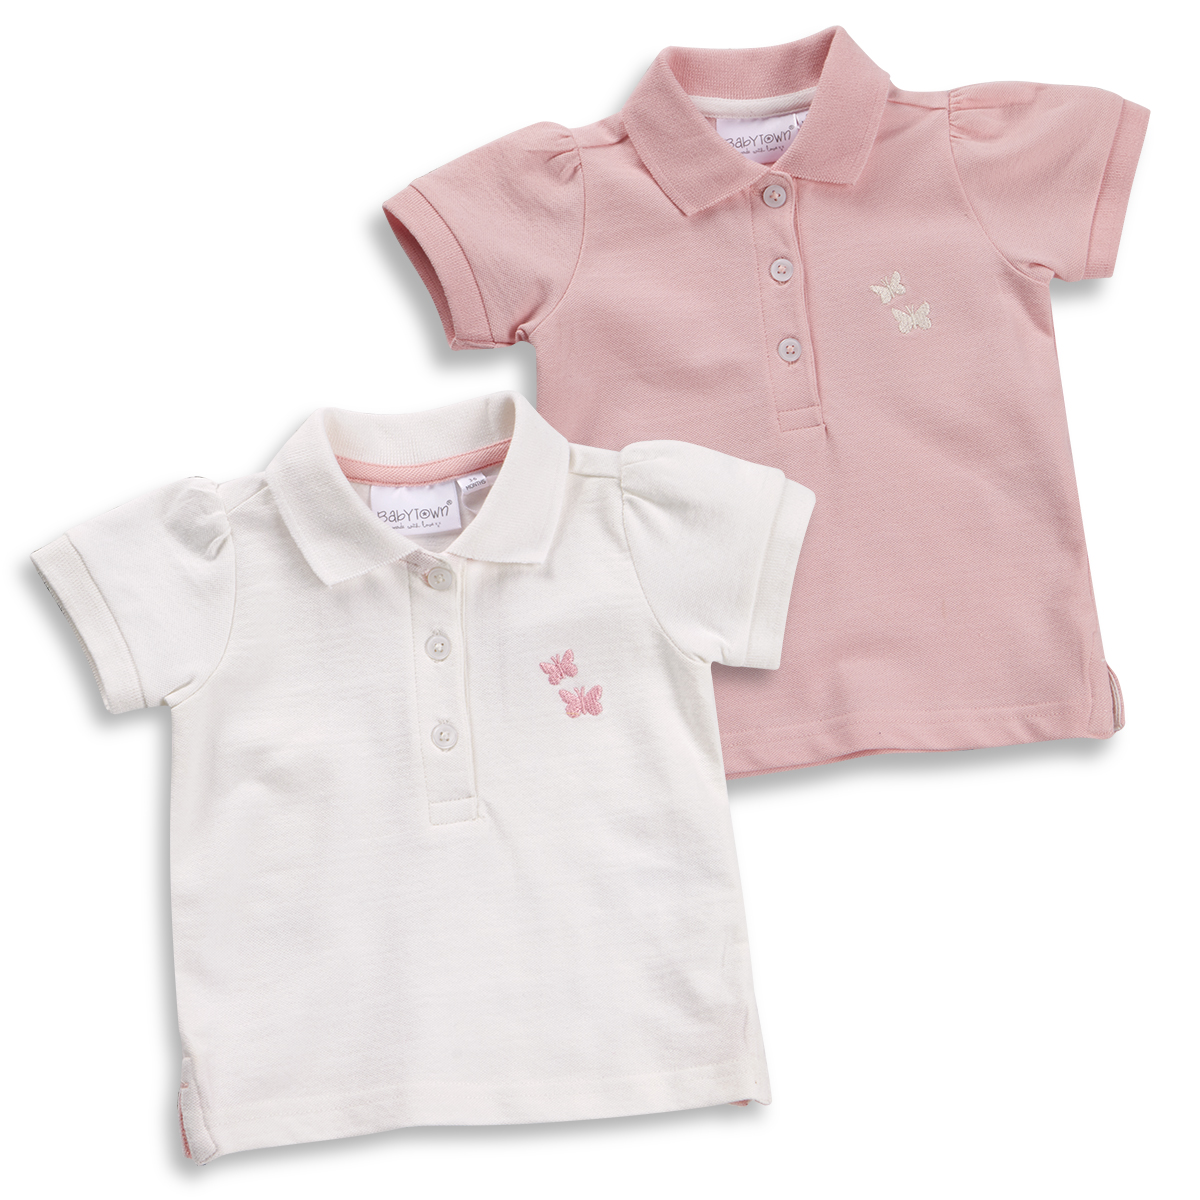 2aff5777 Infant Baby Girls Butterfly Equestrian Polo T-Shirt Top Short Sleeve 3-24  Months